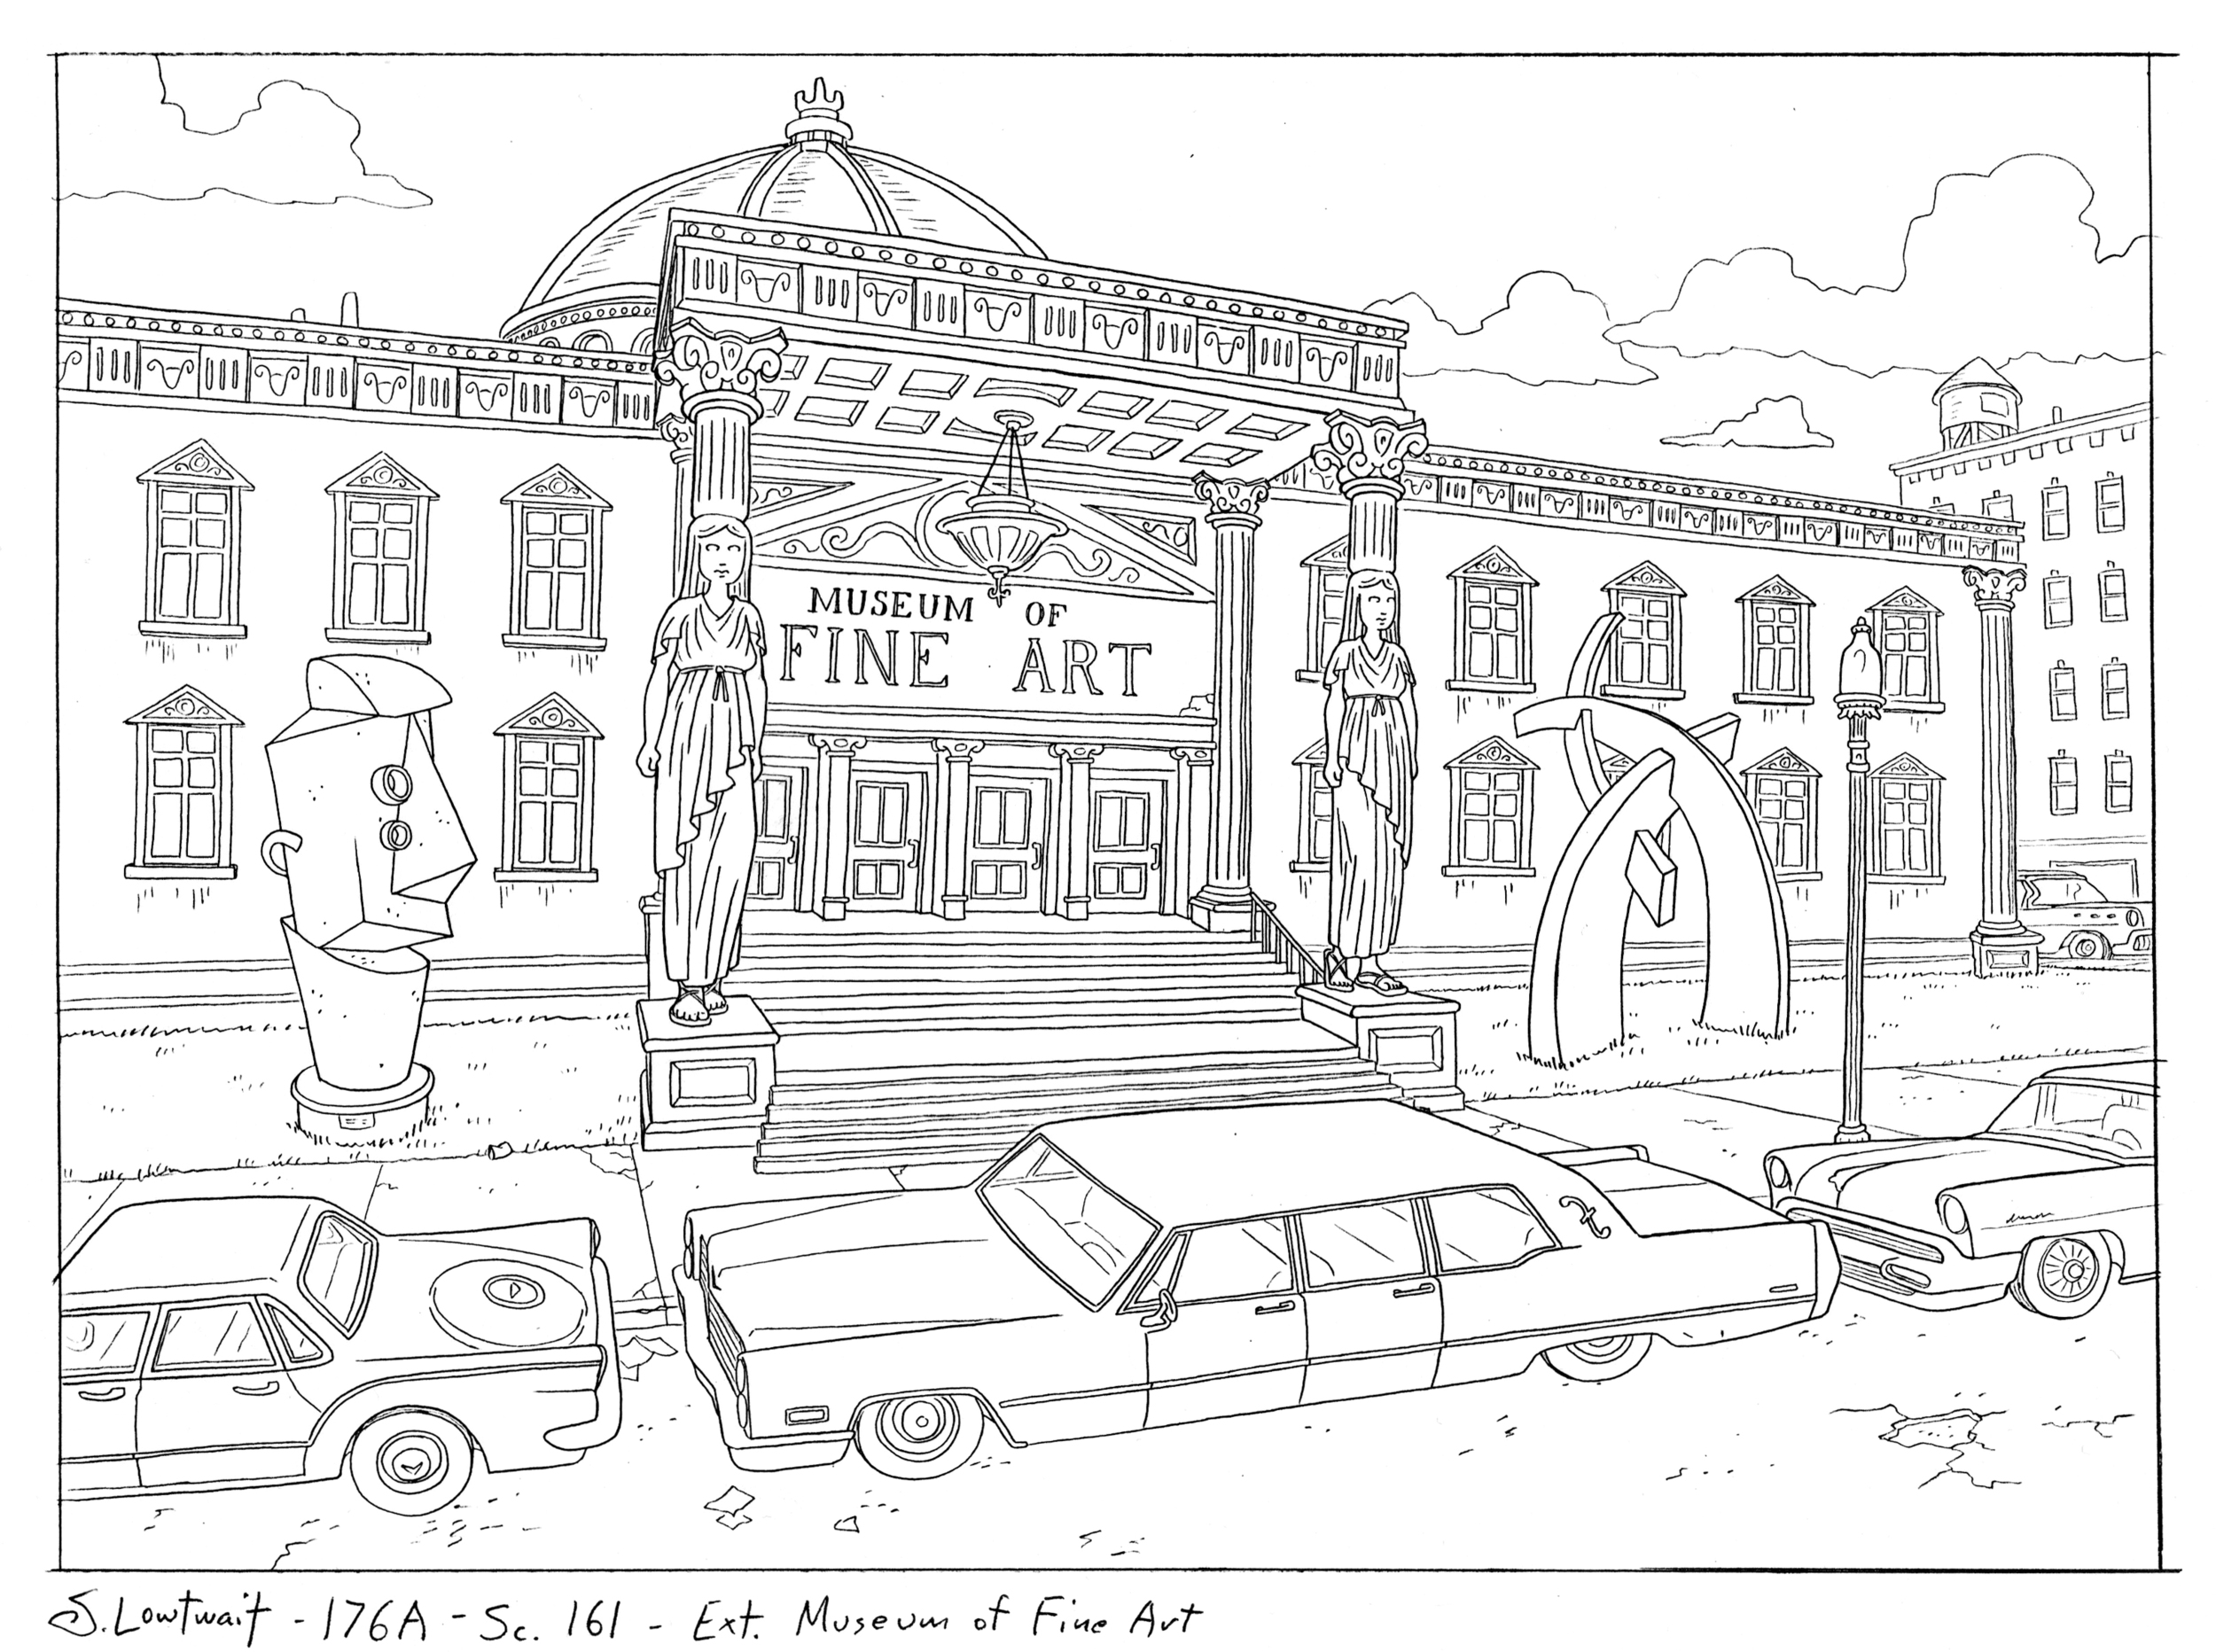 The Museum of Fine Art. Classic figurative columns, modernist sculpture on the lawn, and a limo parked out front. Fancy!